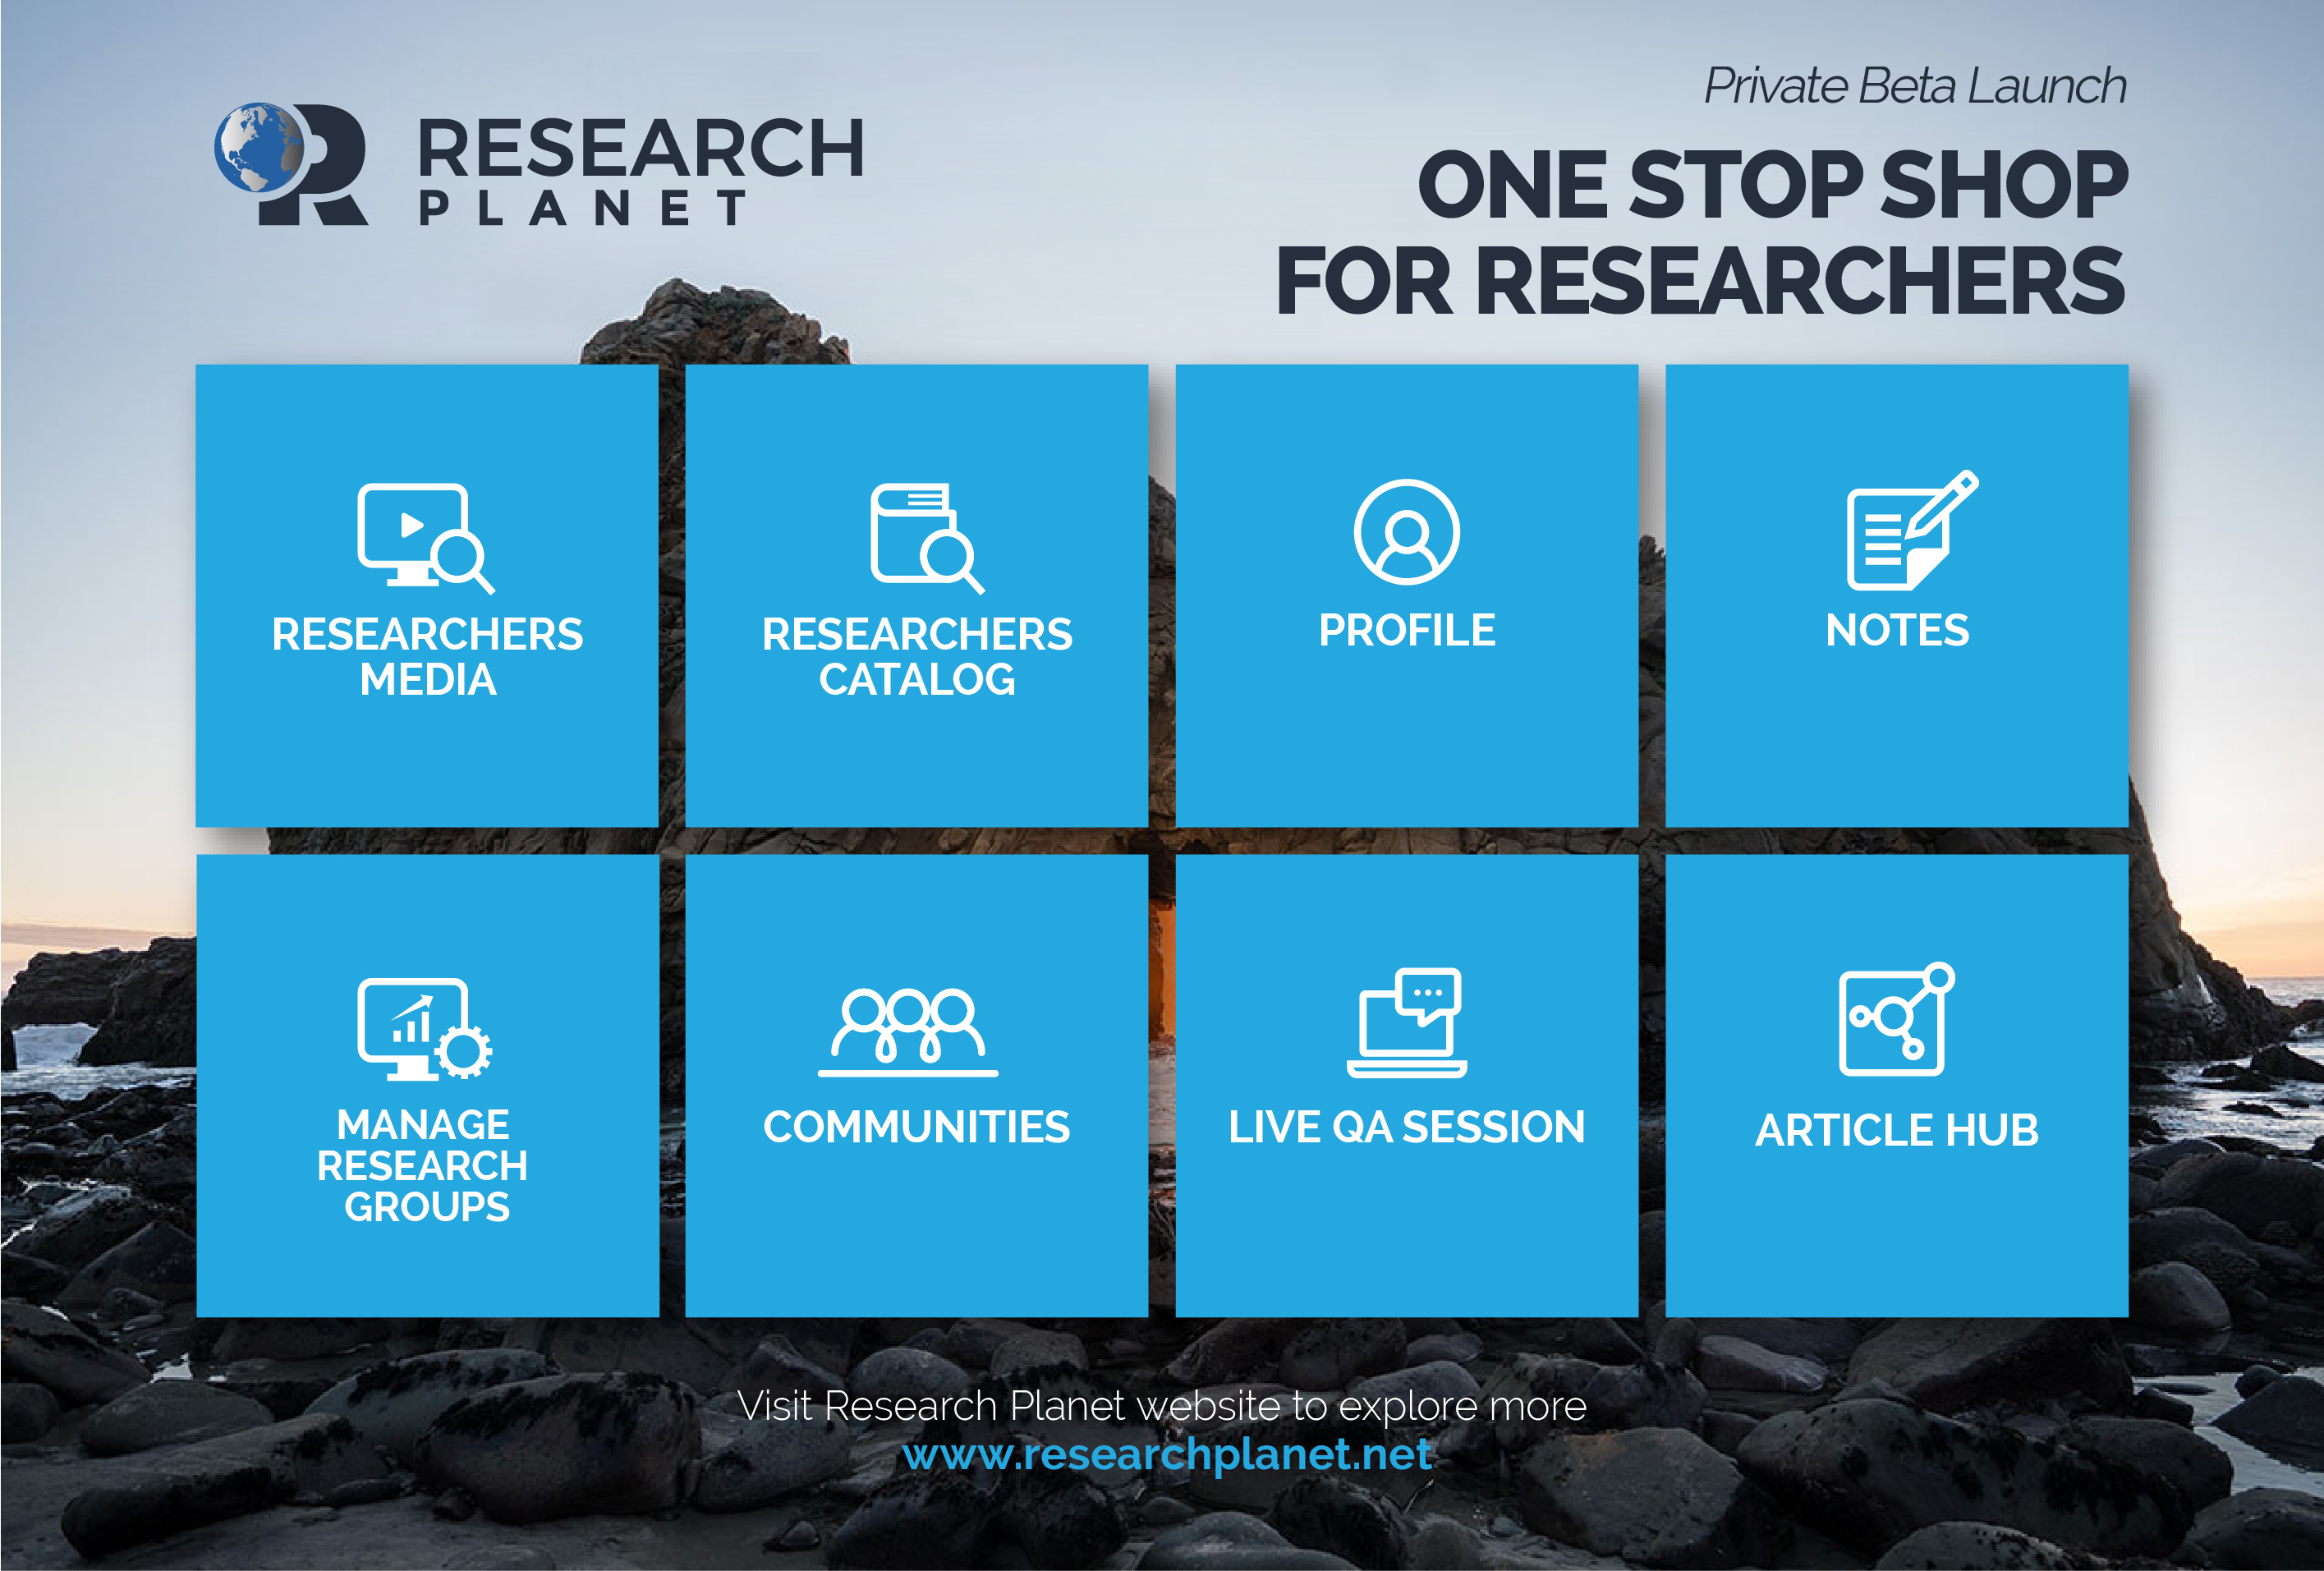 Research Planet